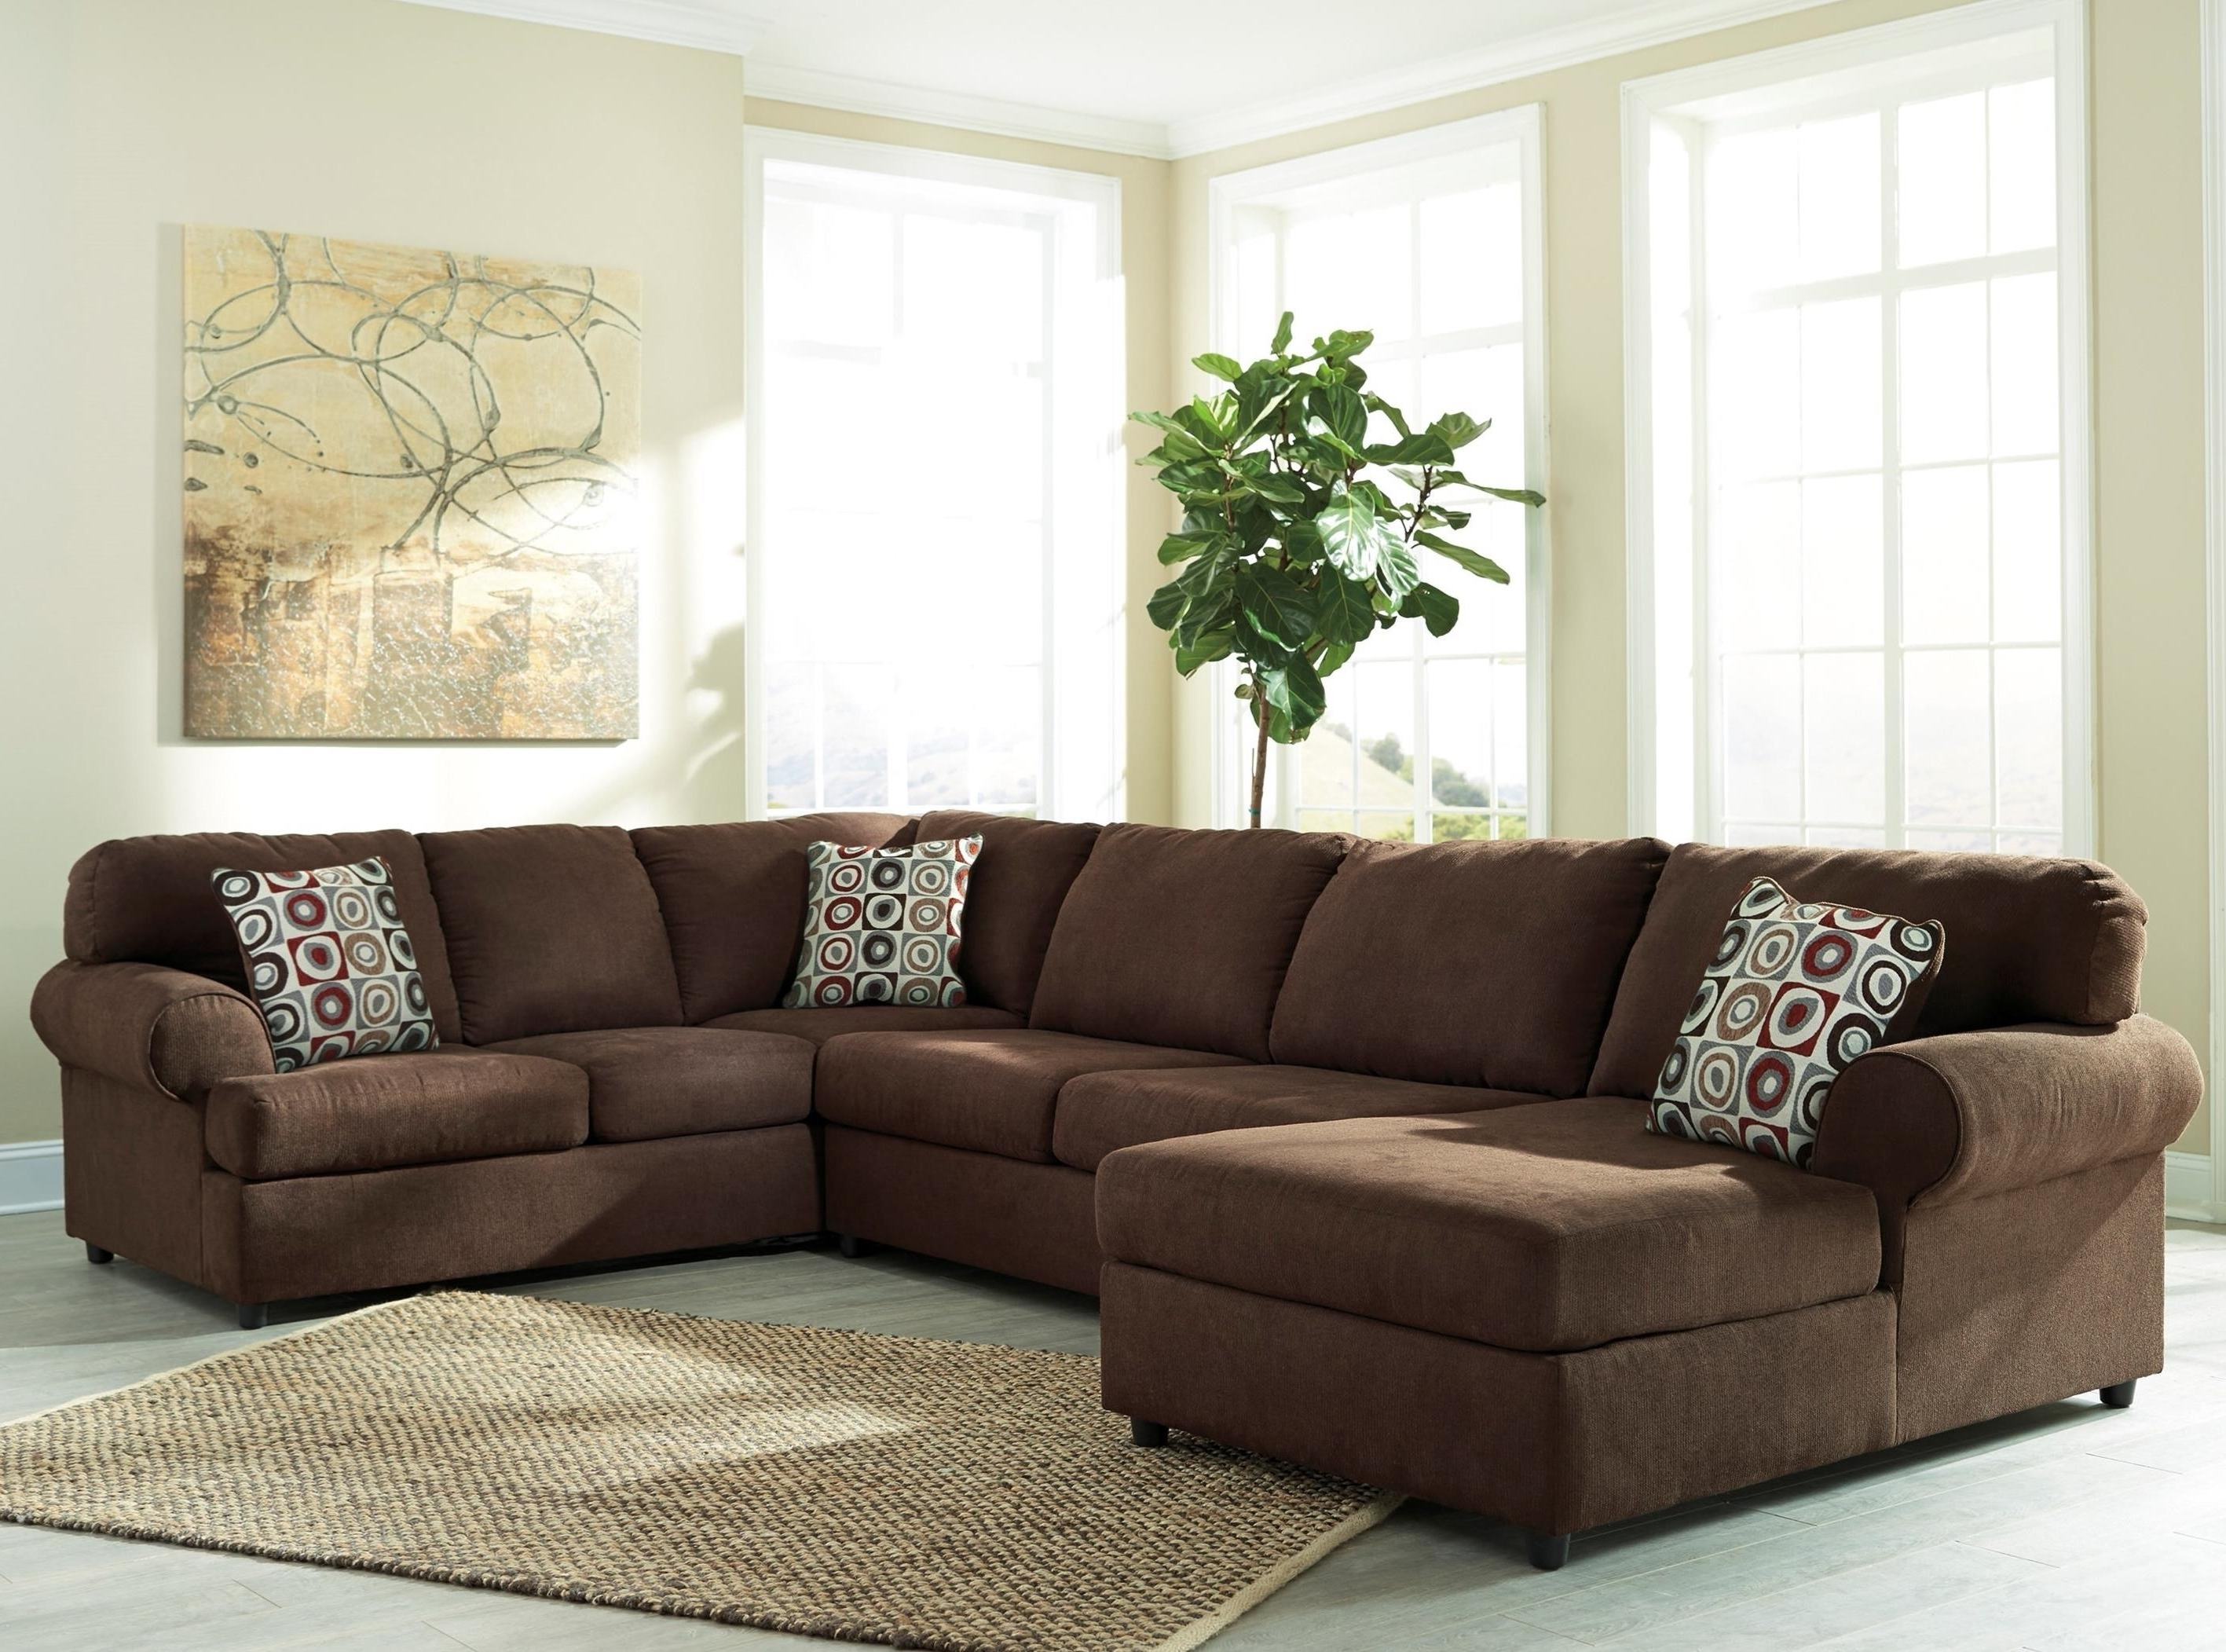 Signature Designashley Jayceon 3 Piece Sectional With Left For Most Recent Long Chaise Sofas (View 13 of 15)